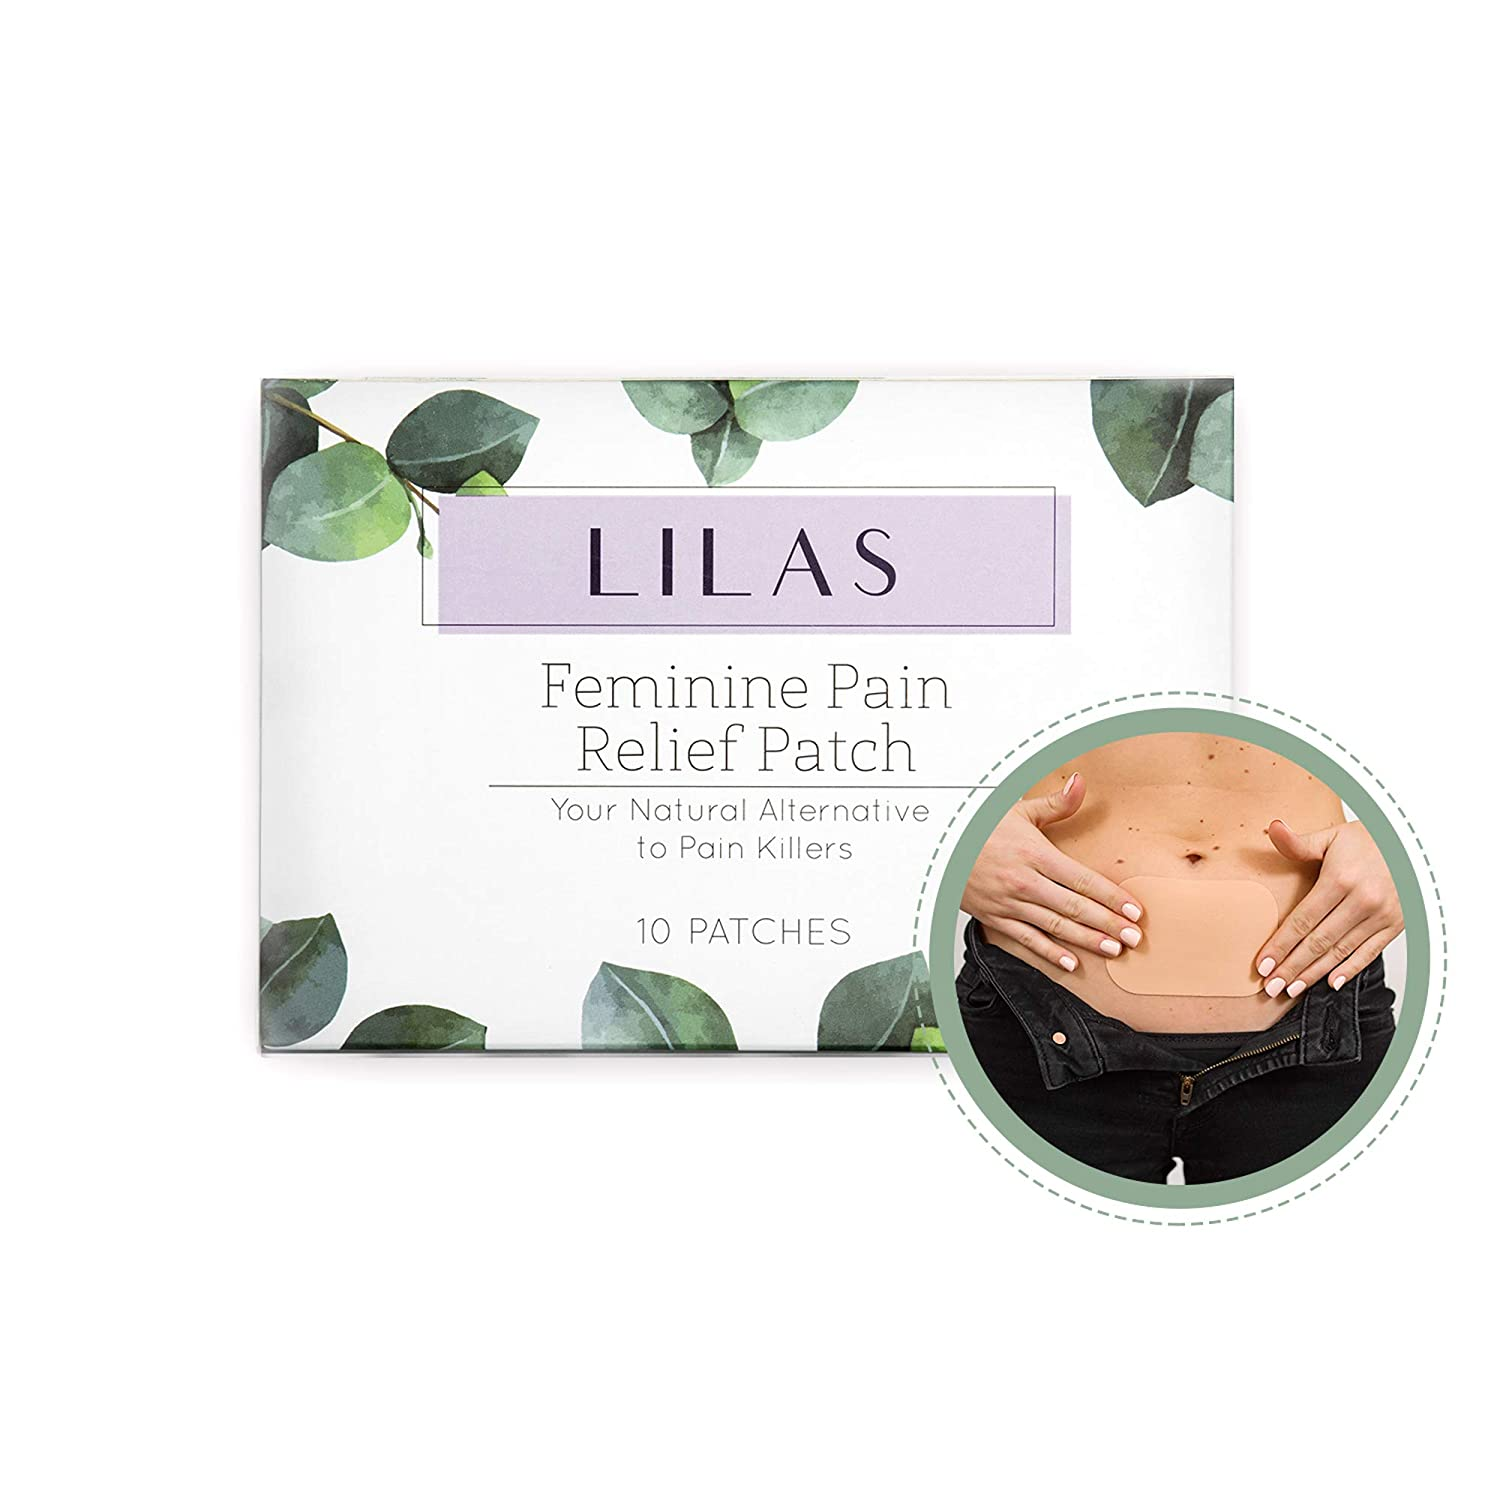 LILAS Pain Relief Patch (10-Pack) - Natural Relief for Menstrual Period Cramps | Made of Essential Oils | Designed for PMS Relief | Plant Based Painkiller Alternative